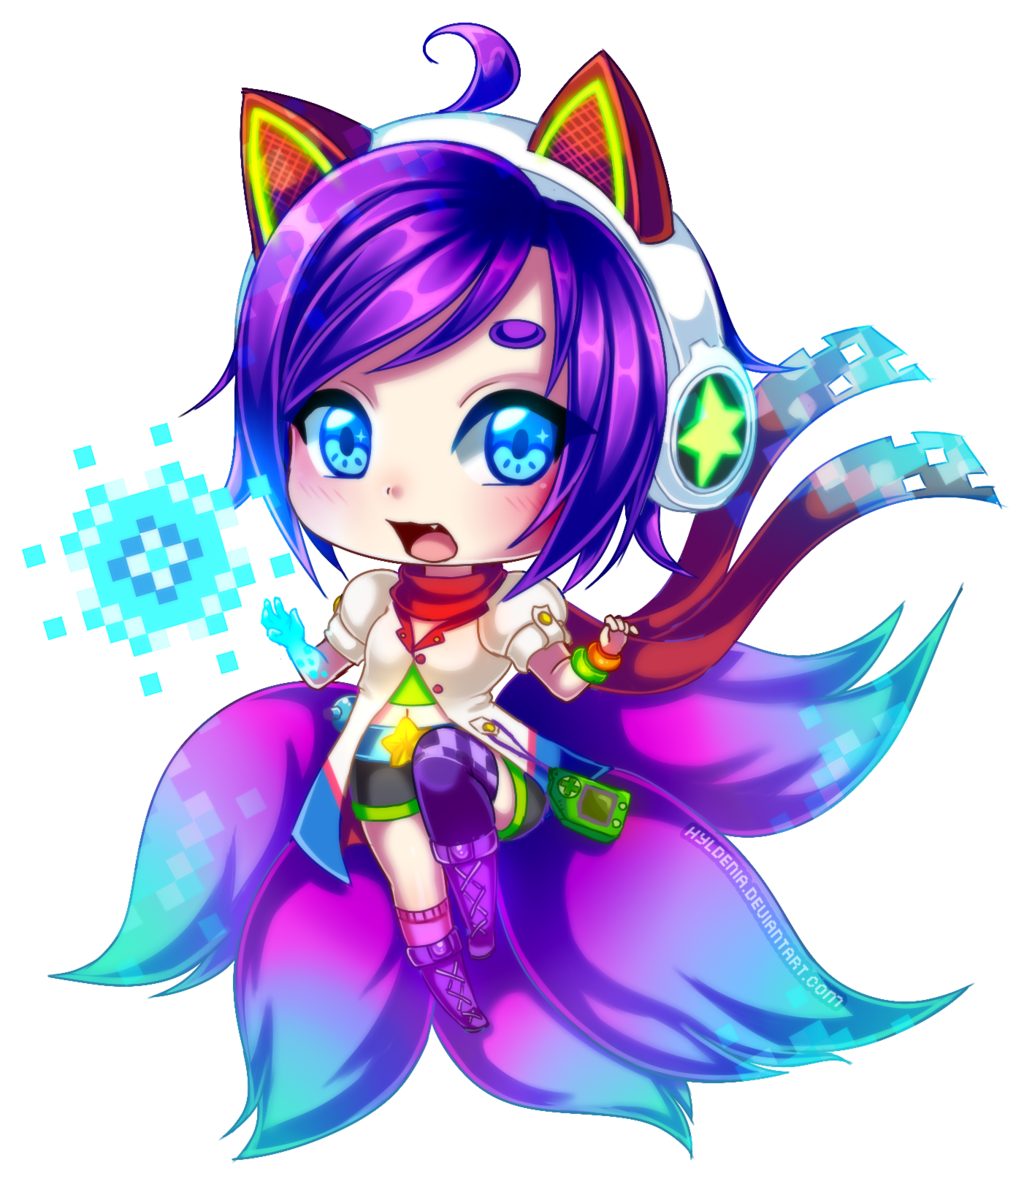 League Of Legends Arcade Ahri Wallpapers For Iphone On Wallpaper